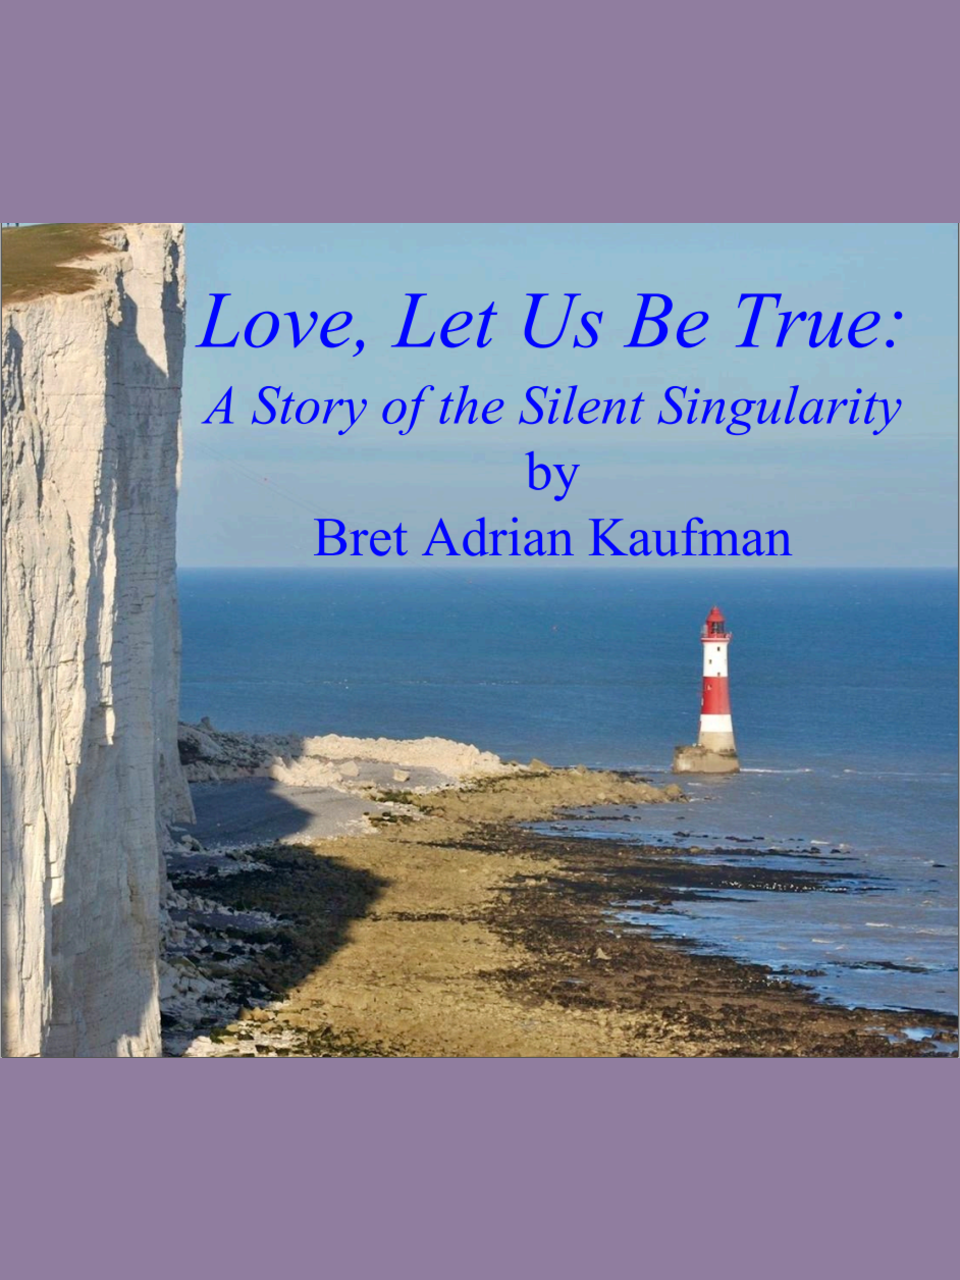 Love, Let Us Be True: A Story of the Silent Singularity